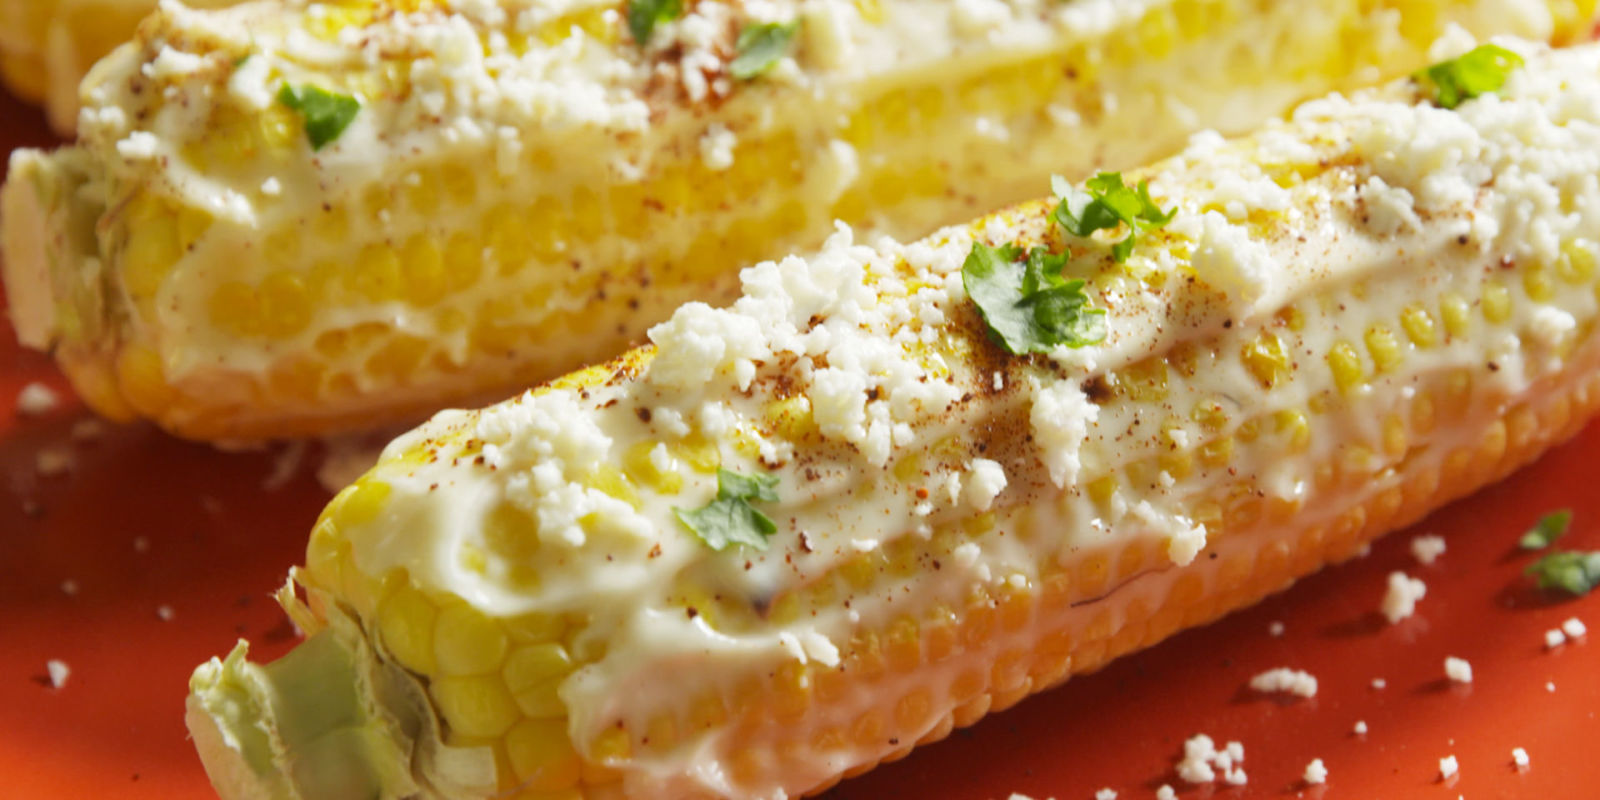 Best Mexican Street Corn Recipe - How To Make Elote - Delish.com